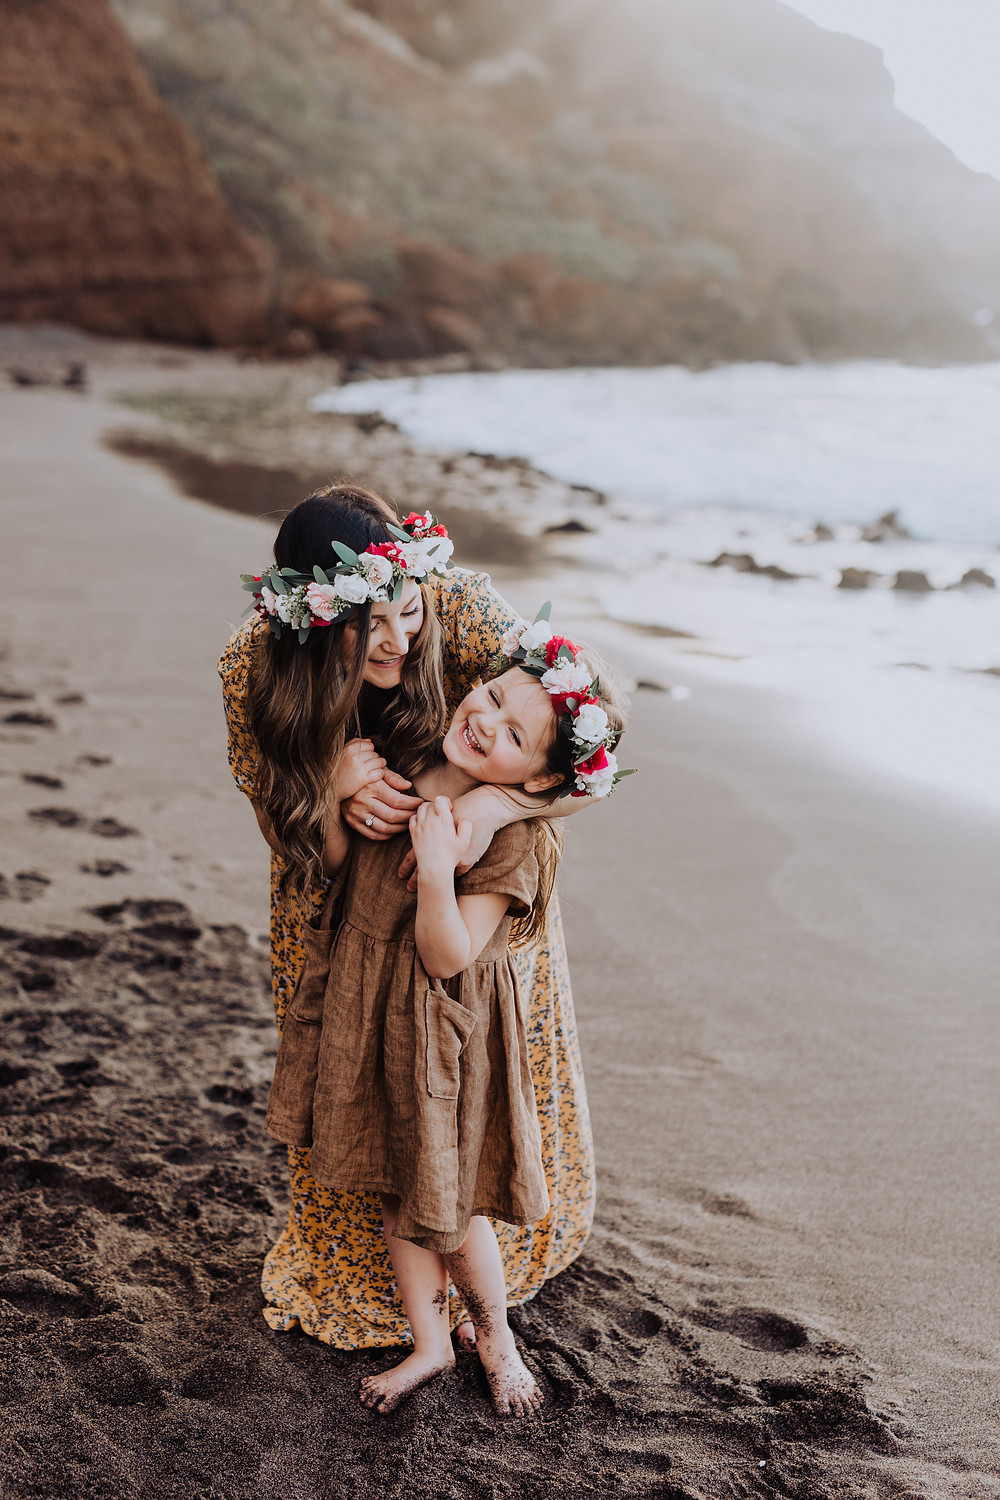 A mother and daughter laugh playfully together on the beach in Hawaii.